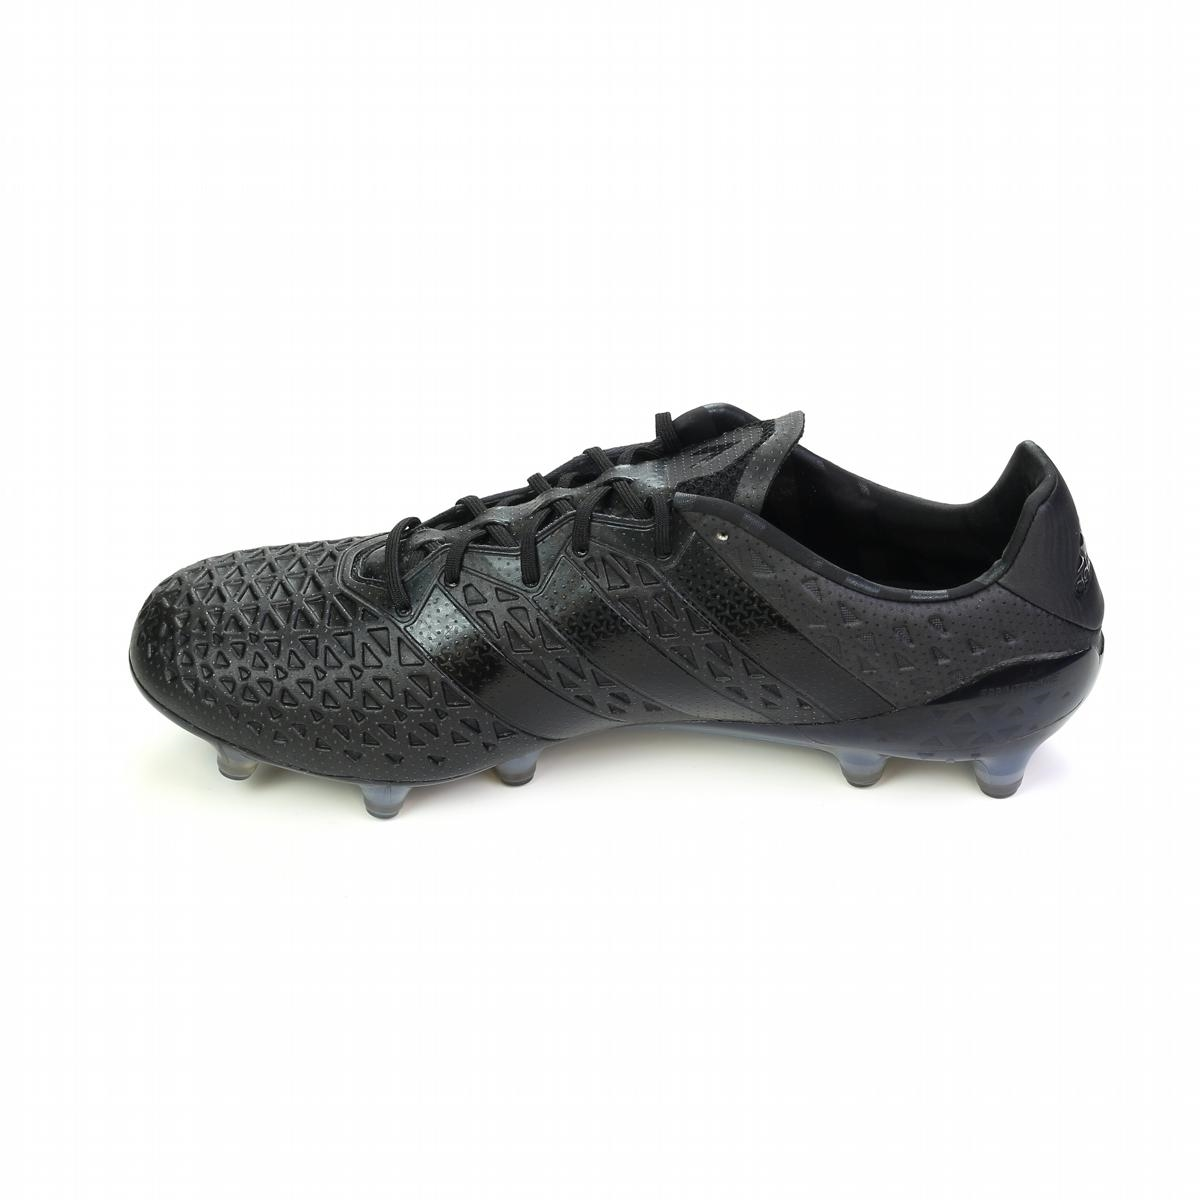 best sneakers 4e680 b8d85 Adidas ACE 16.1 FG Soccer Cleats (Fluid Black)